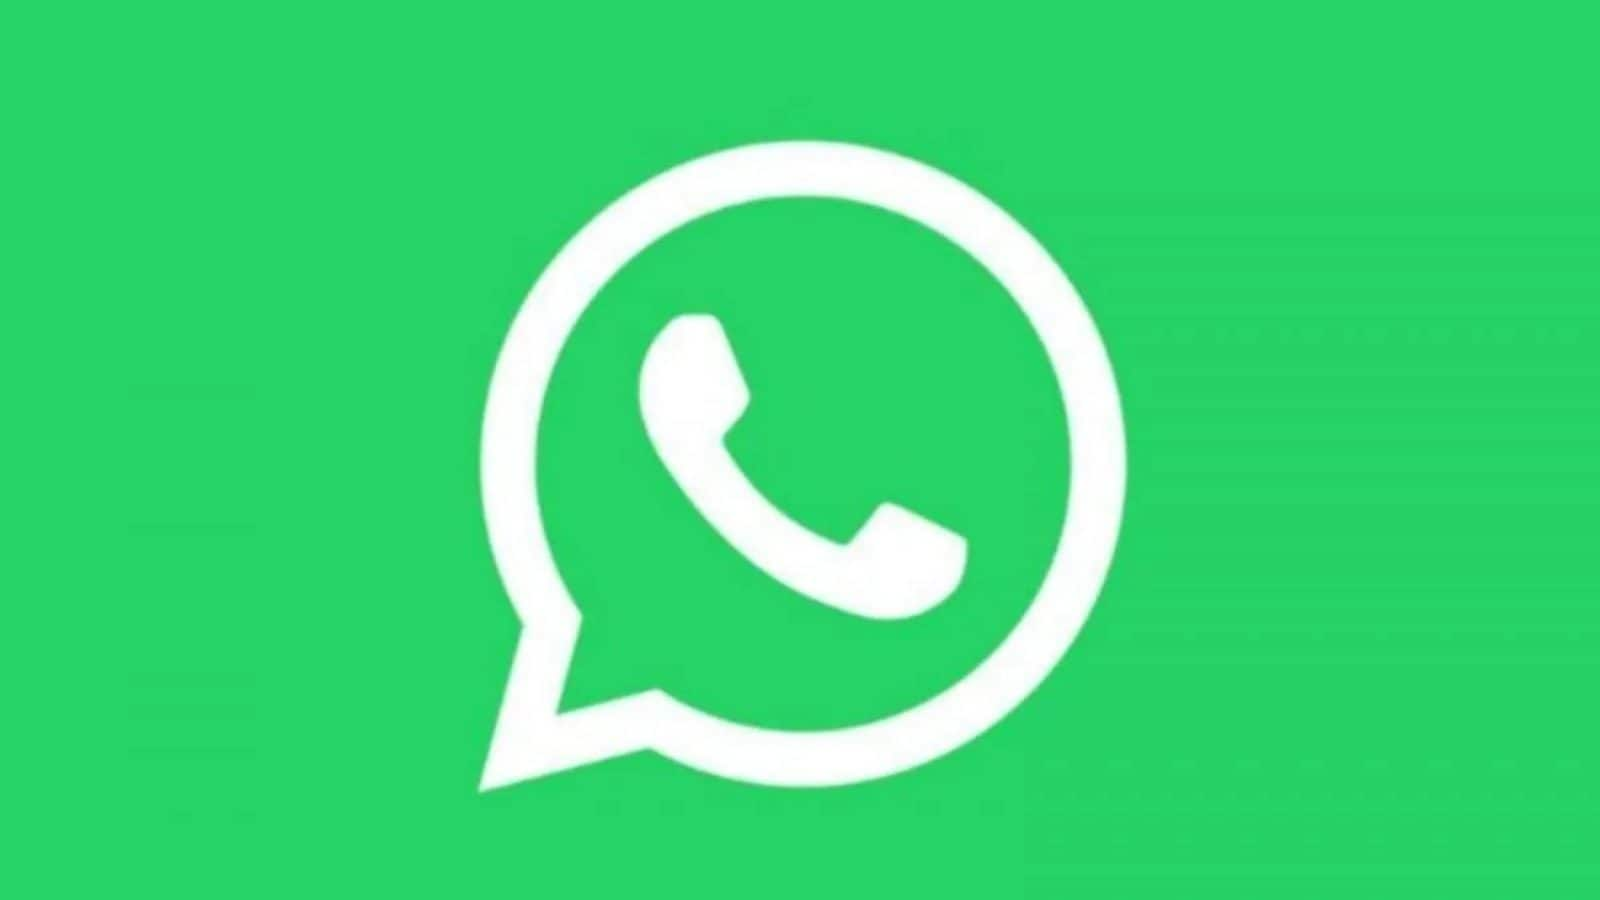 WhatsApp Will Stop Working On These Android Phones, iPhones By Next Month: Full List